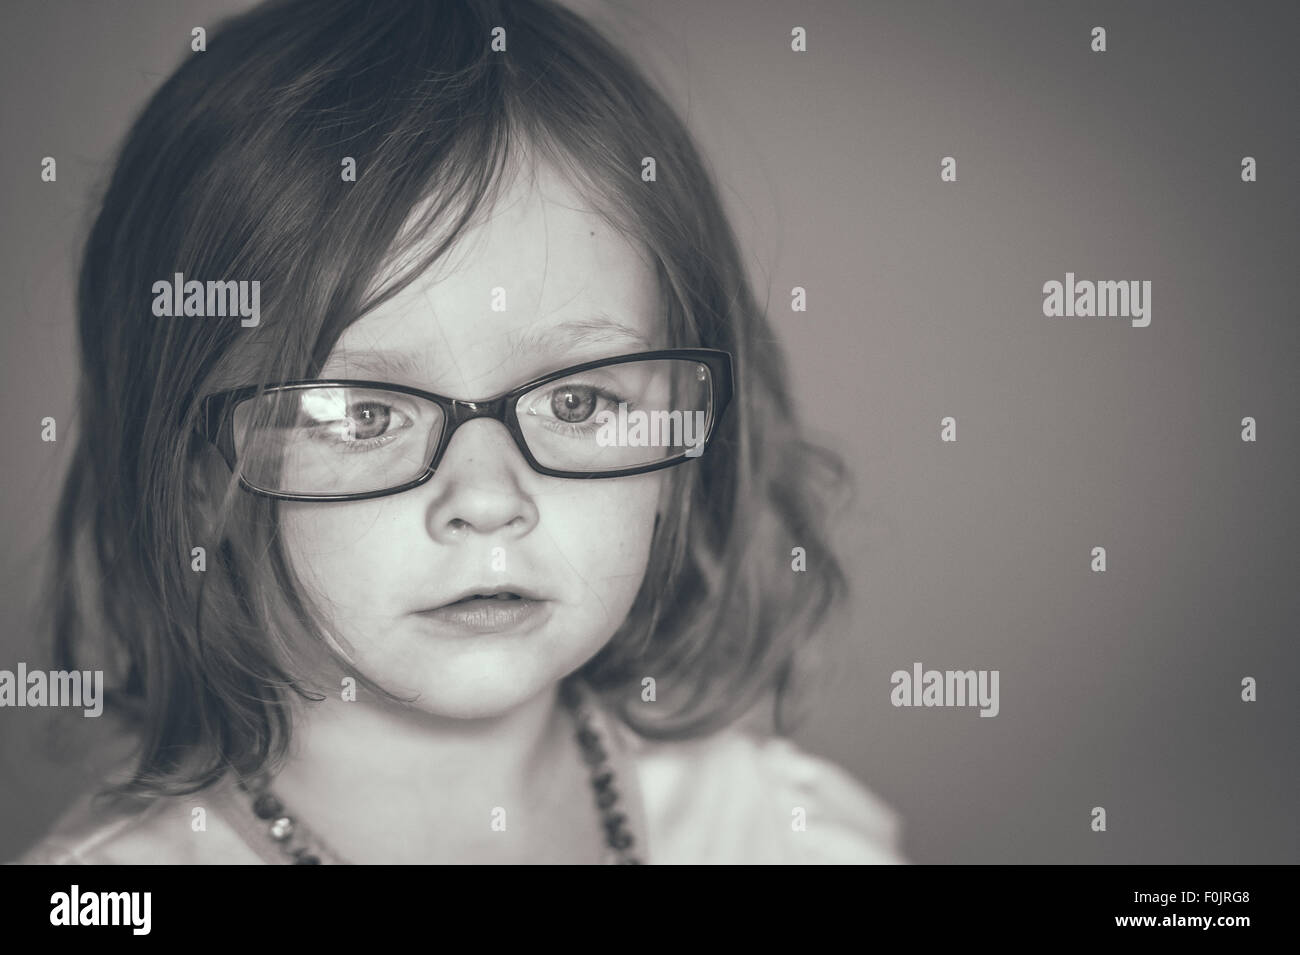 A young girl in oversized glasses - Stock Image